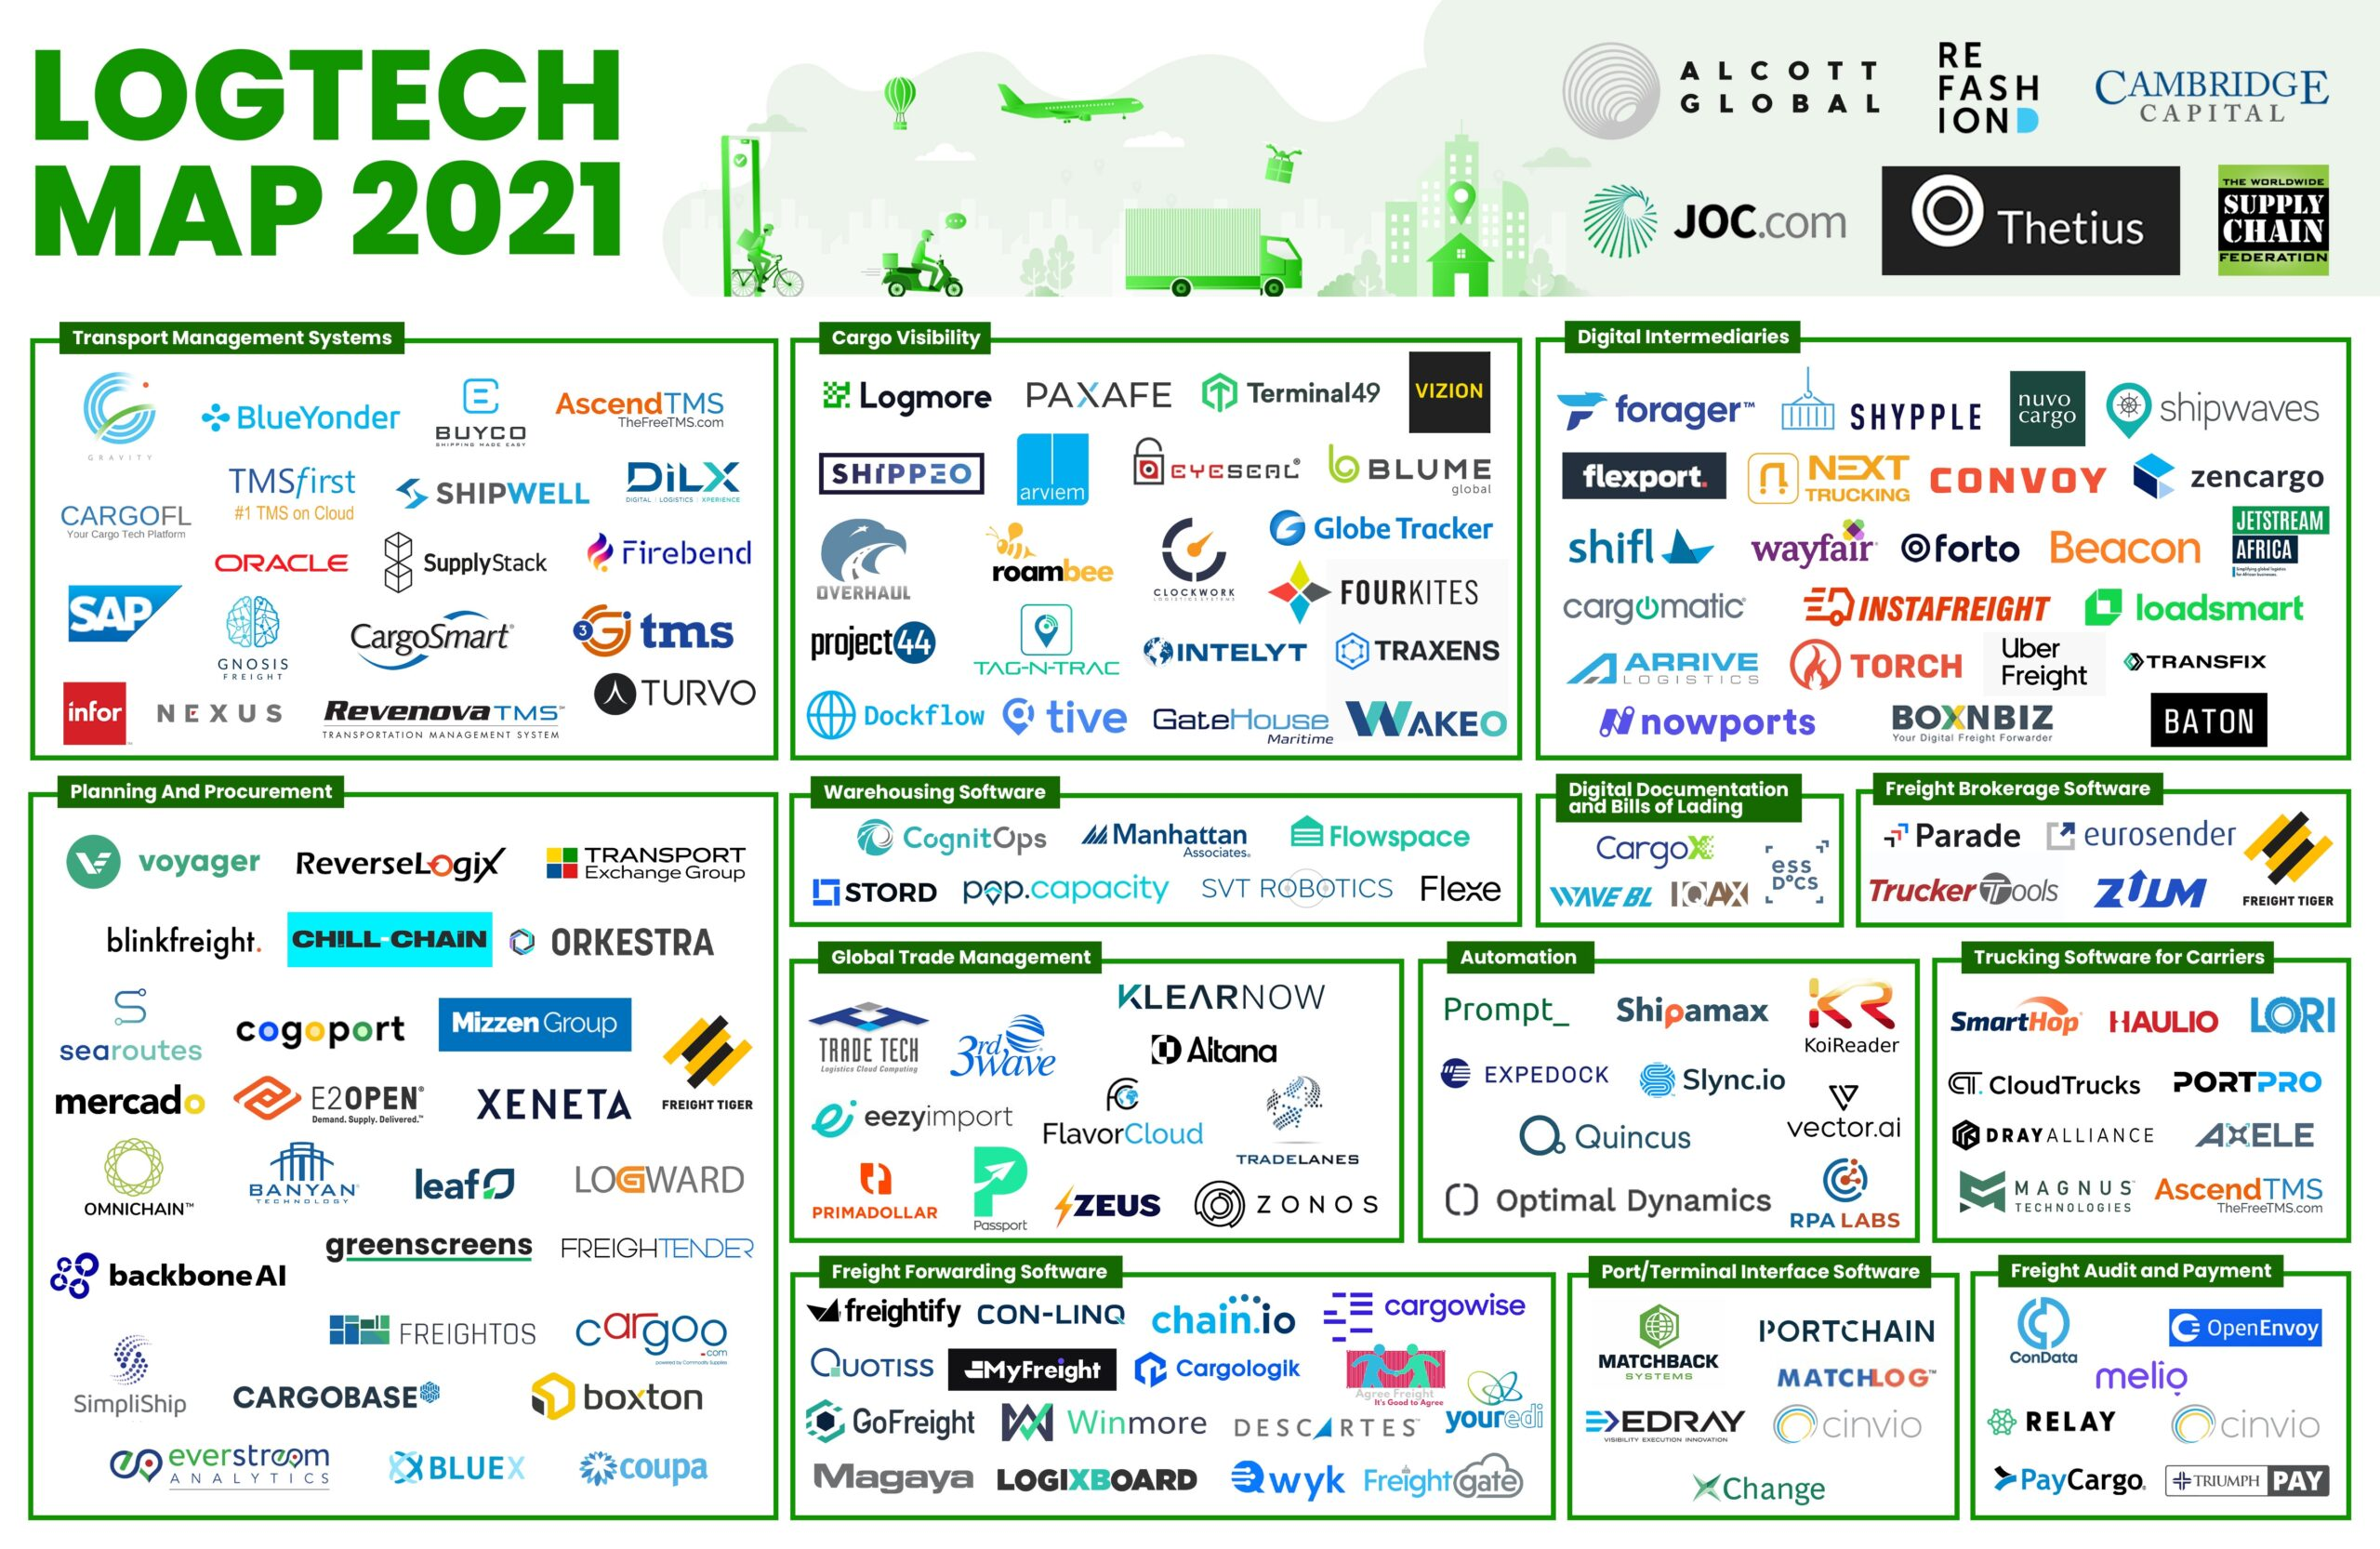 LogTech Market Map, by Cambridge Capital and many others